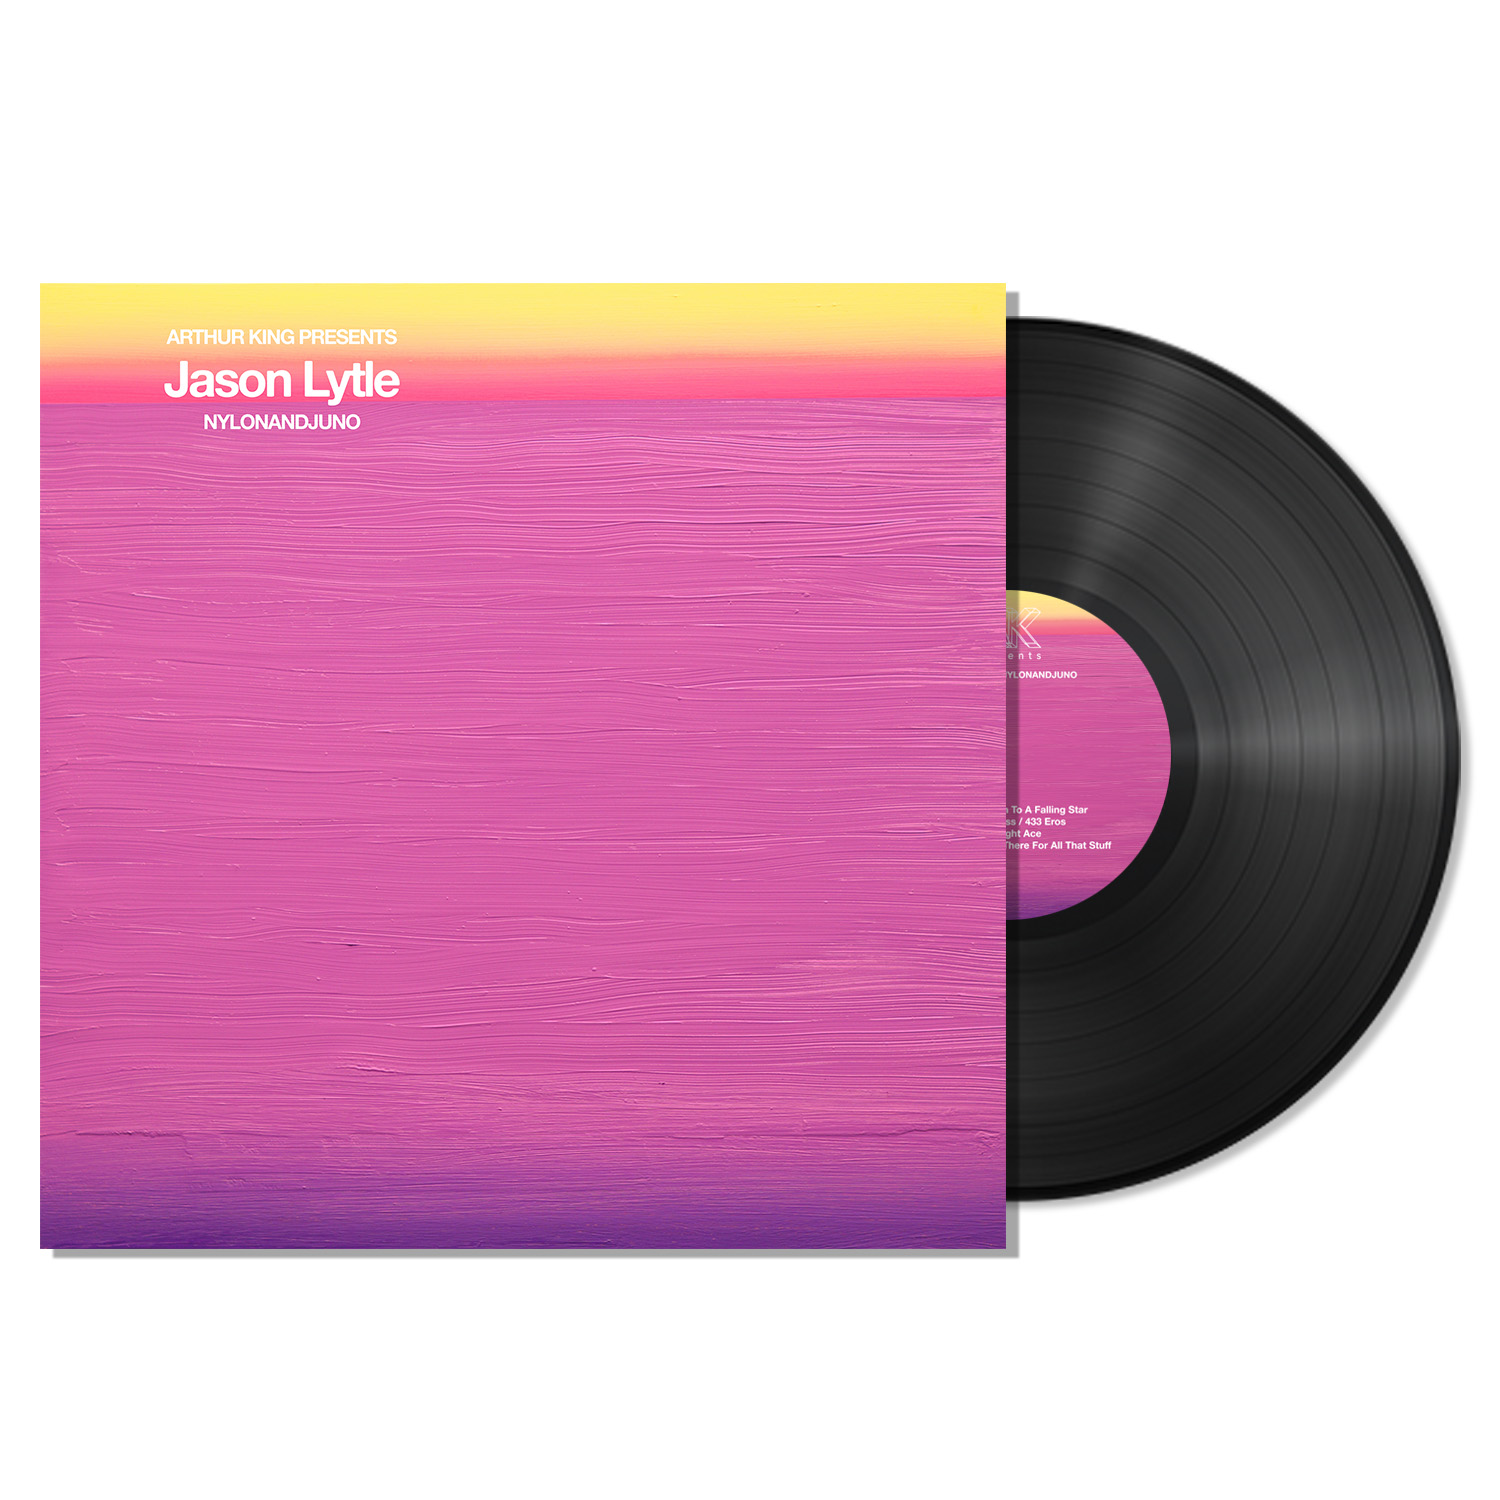 Arthur King Presents Jason Lytle: NYLONANDJUNO - Black LP